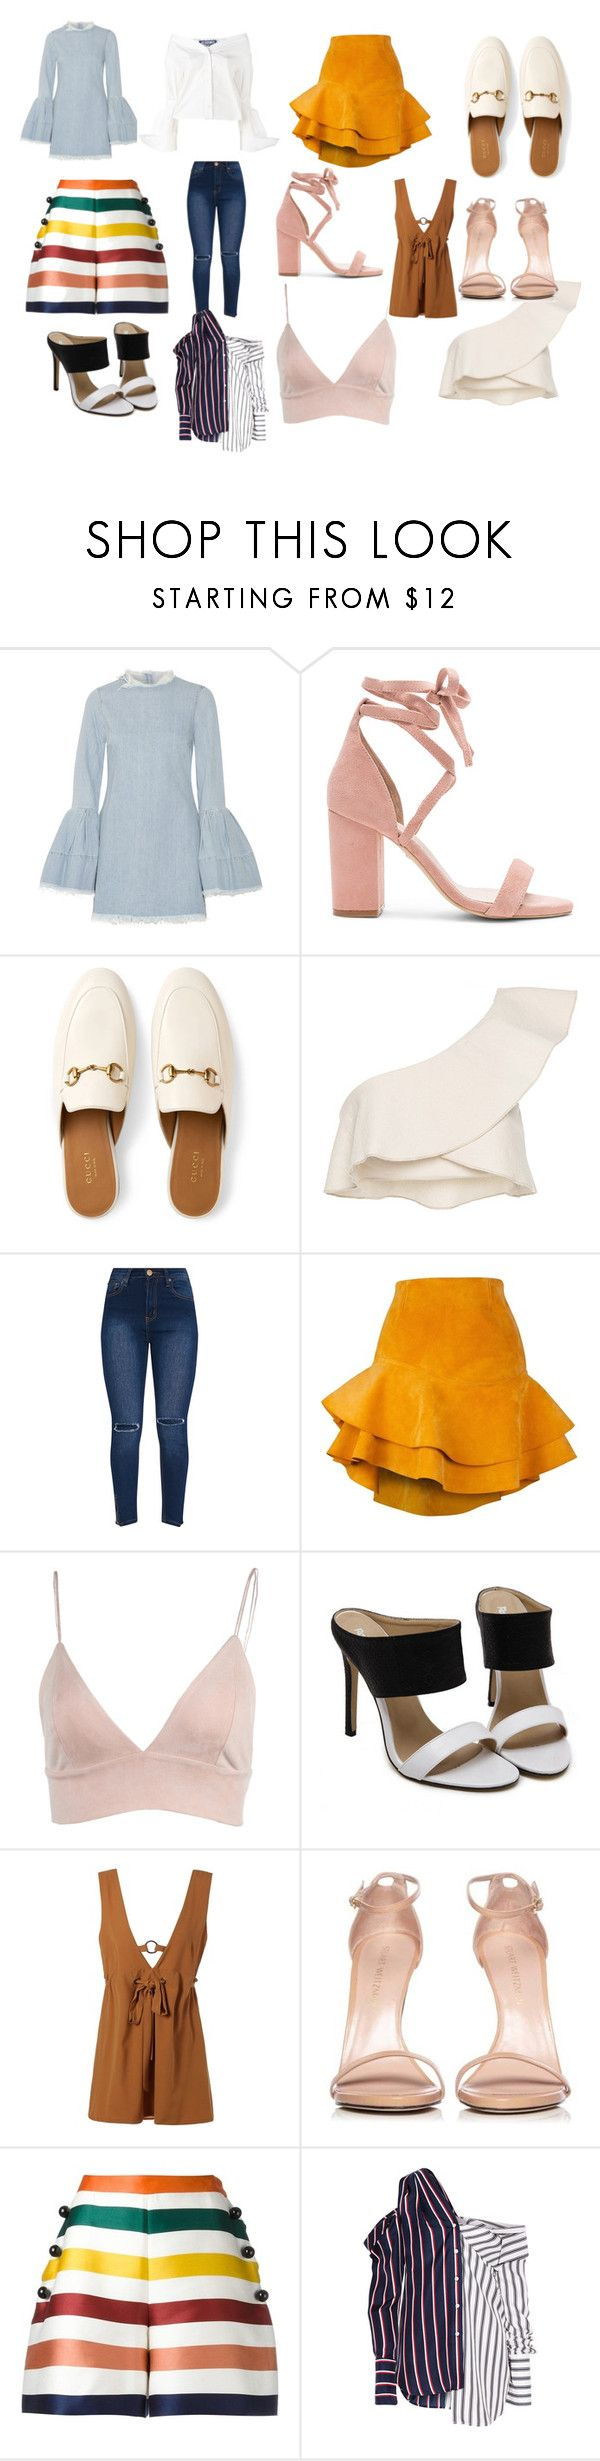 """hauf"" by sofiamar18 on Polyvore featuring Marques'Almeida, Raye, Gucci, Isabel Marant, Siobhan Molloy, Stuart Weitzman, Carolina Herrera, Monse and Jacquemus"